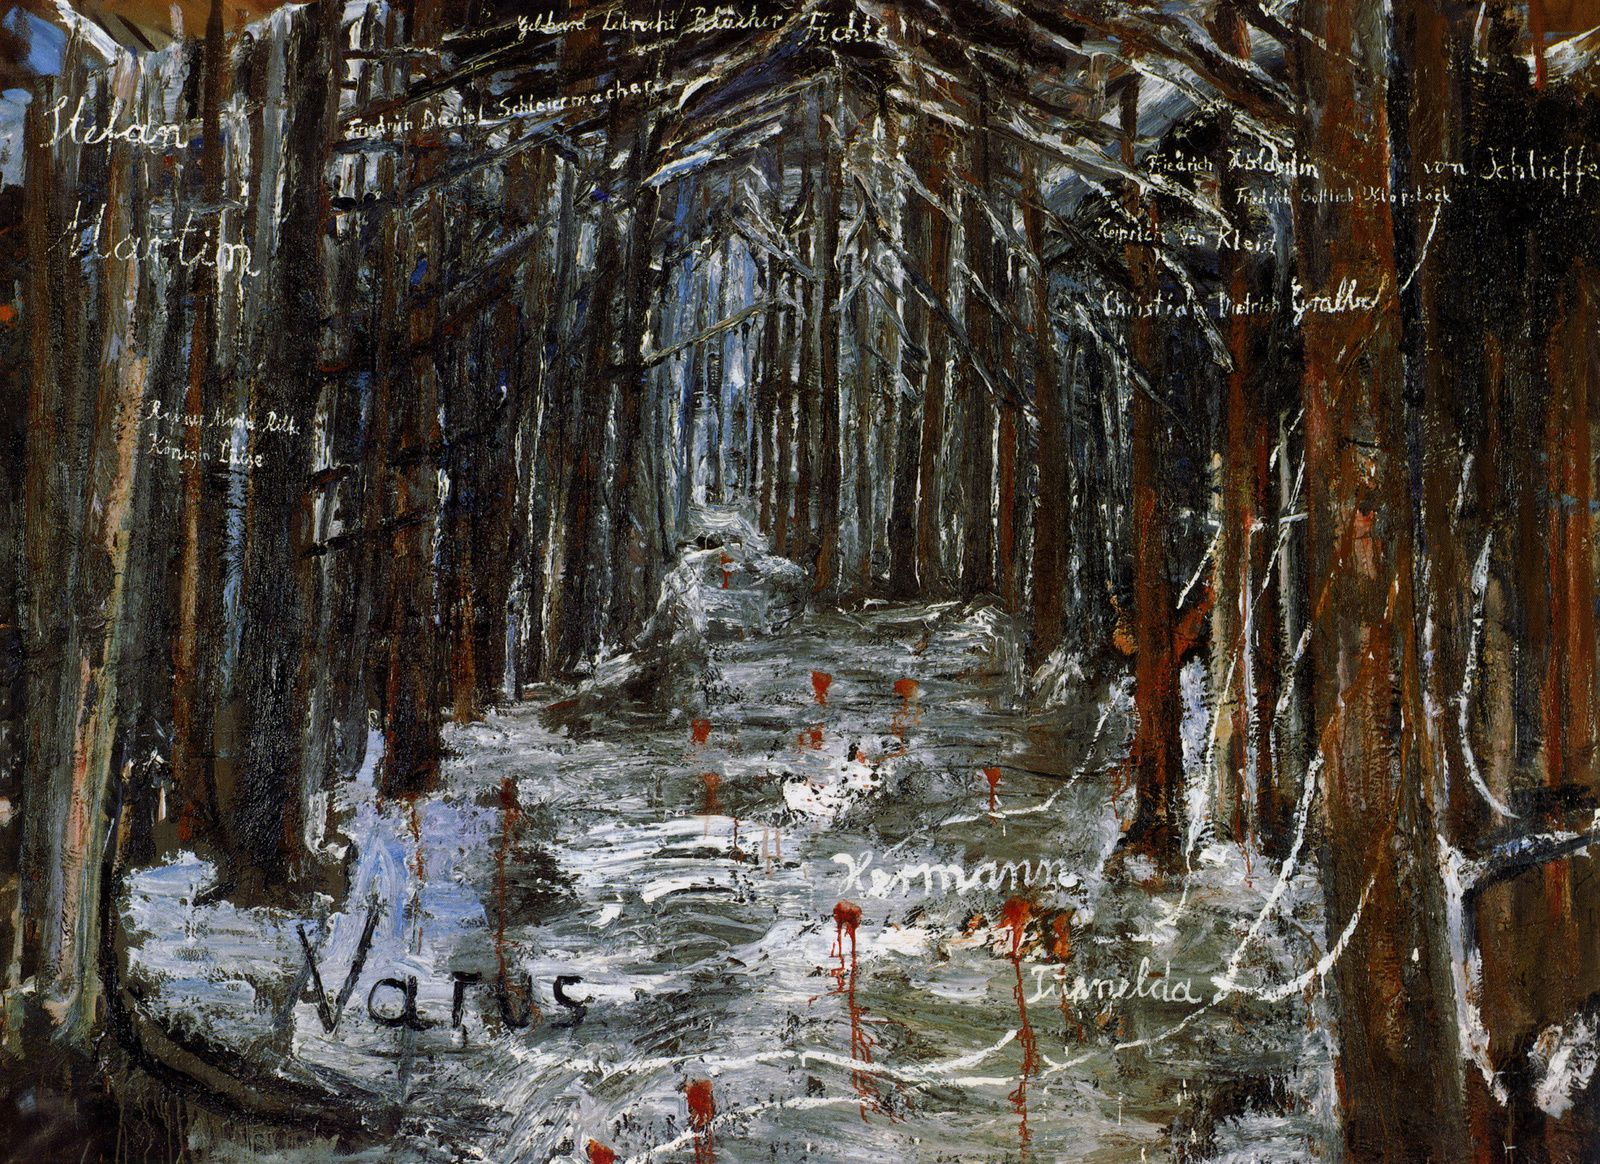 """Varus"", 1976 de Anselm Kiefer - Collection Van Abbemuseum, Eindhoven"